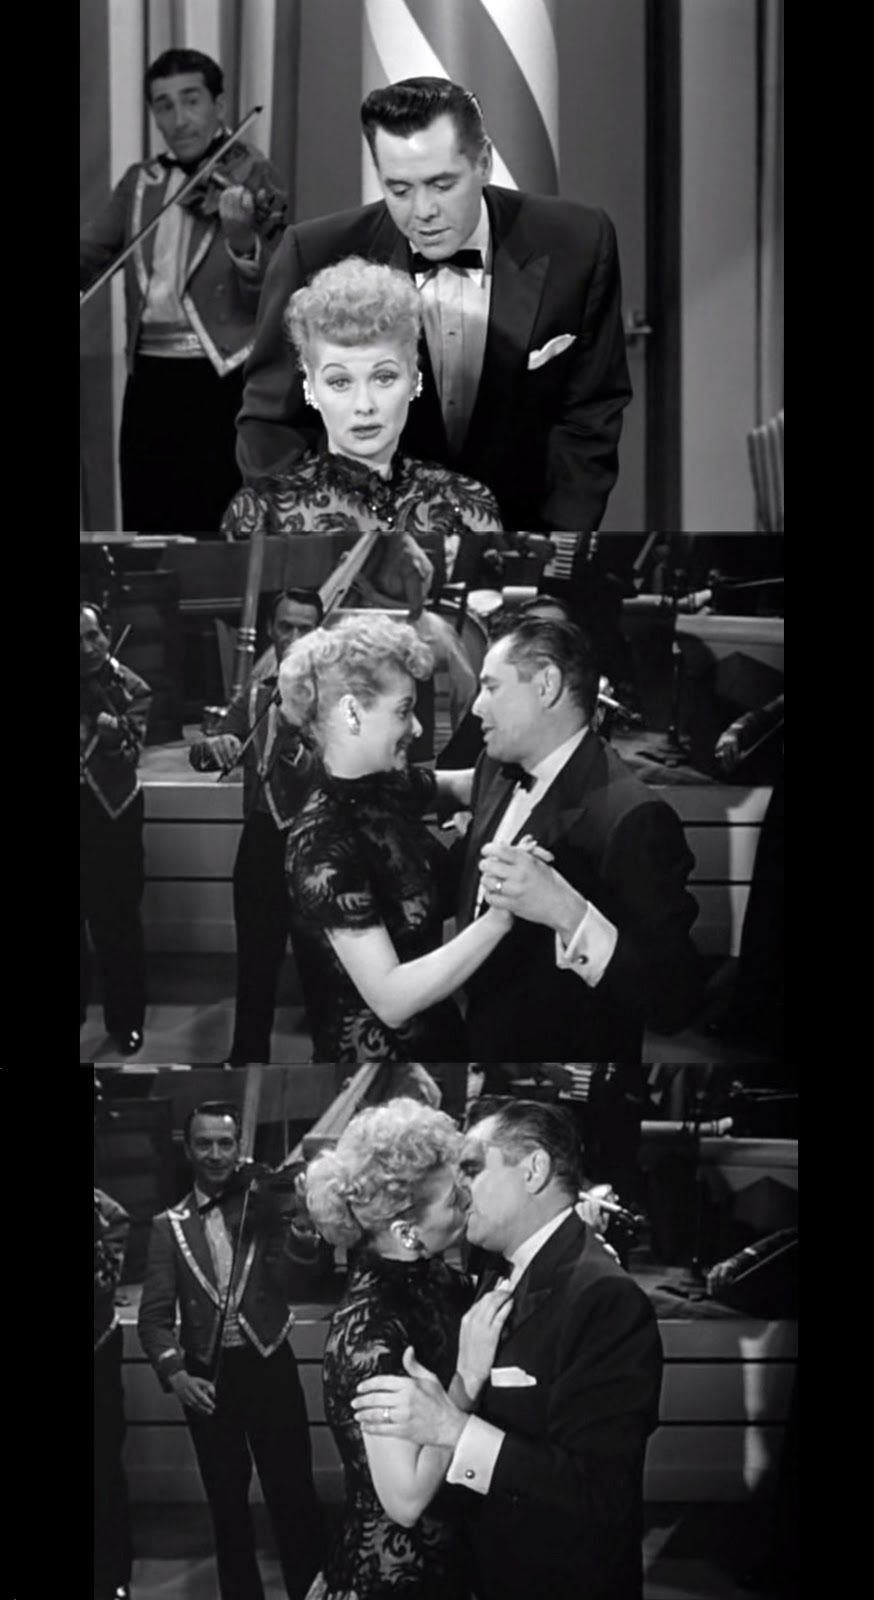 Lucille Ball and Desi Arnaz http://golucilleball.blogspot.com/2011_11_01_archive.html